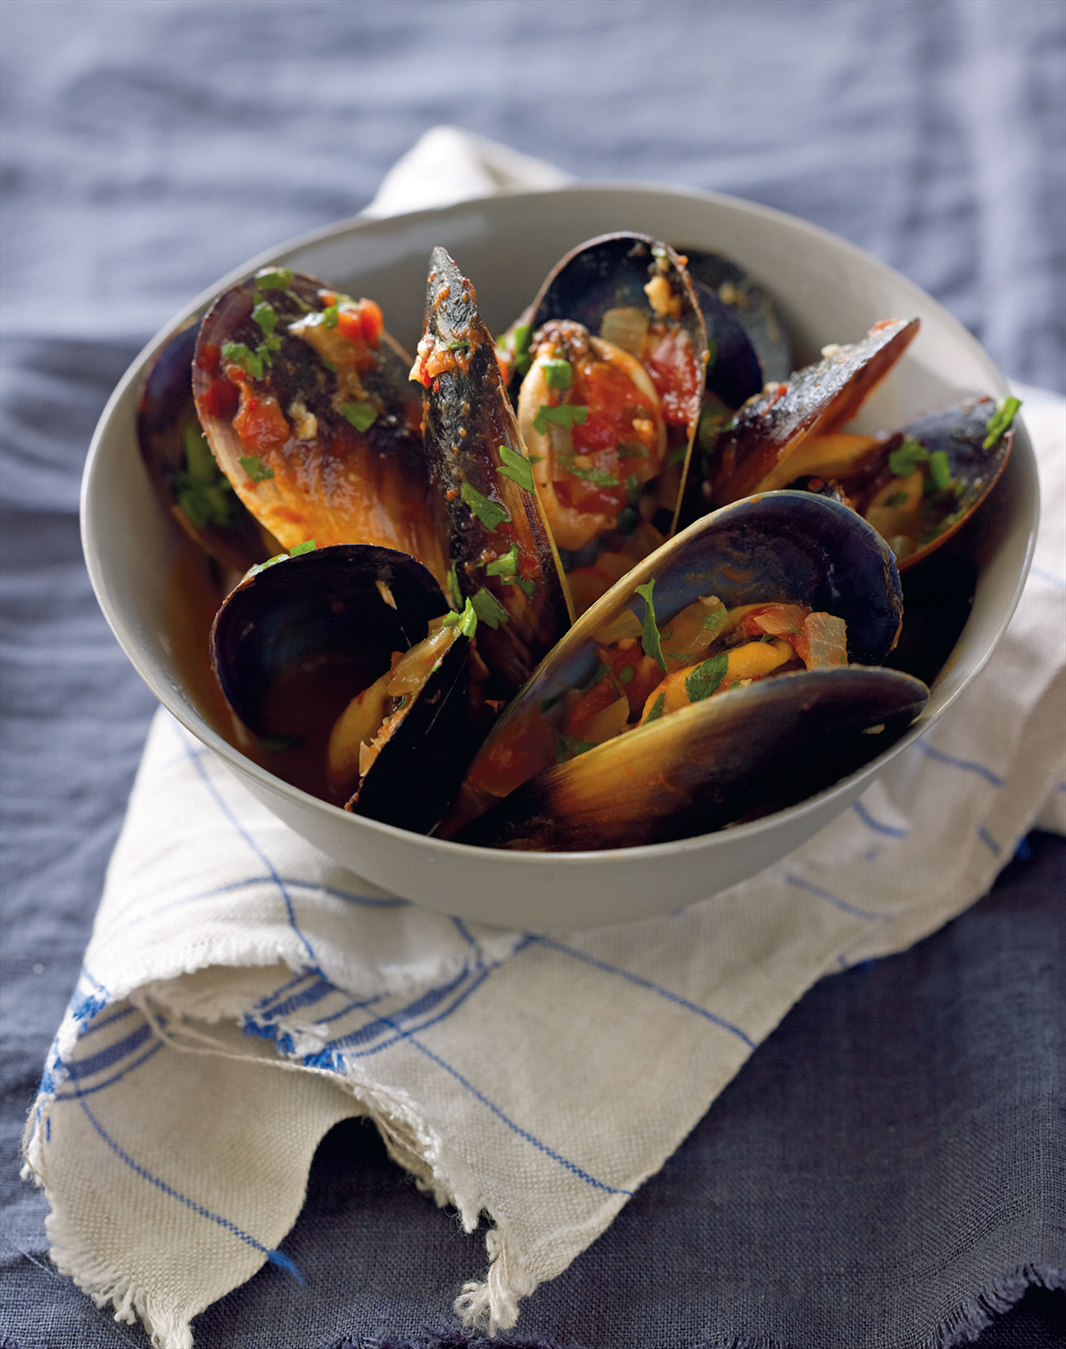 Mussels with tomato, white wine and garlic